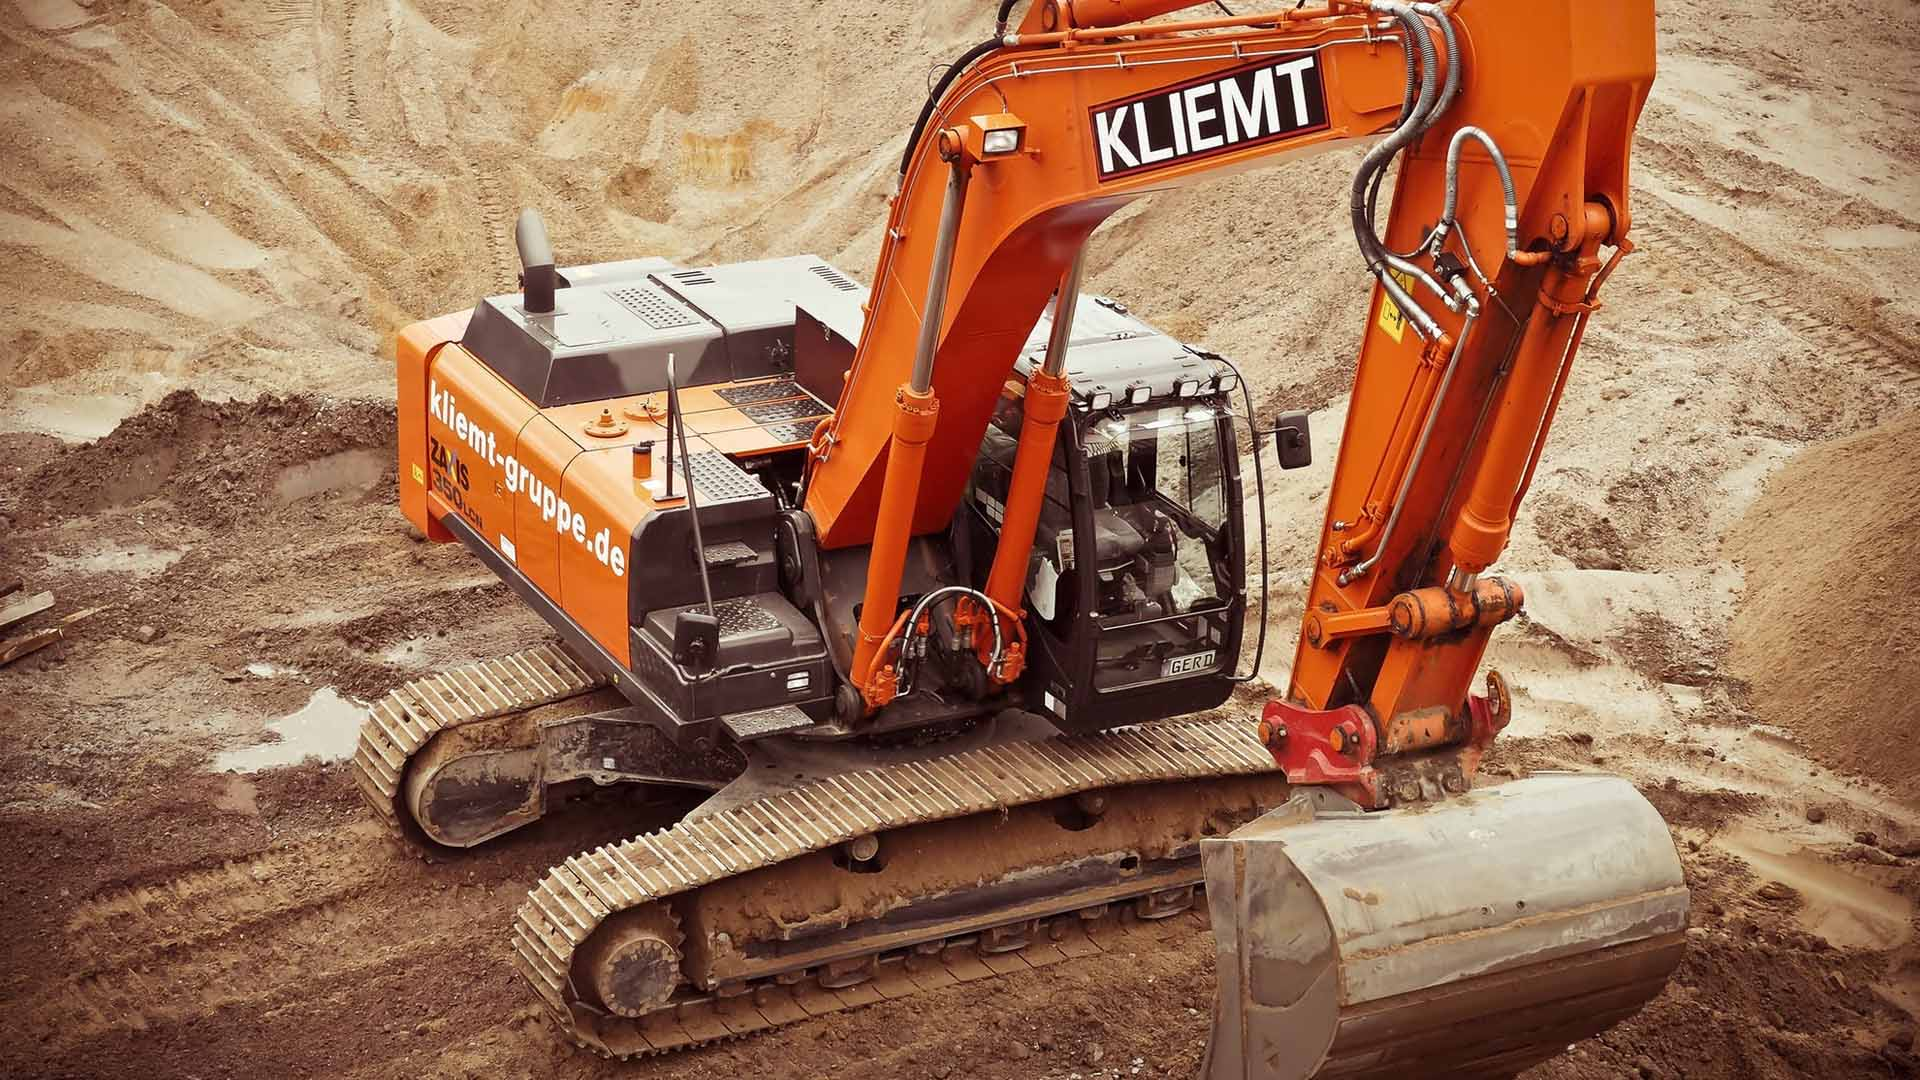 Steam cleaner for Construction and Mining